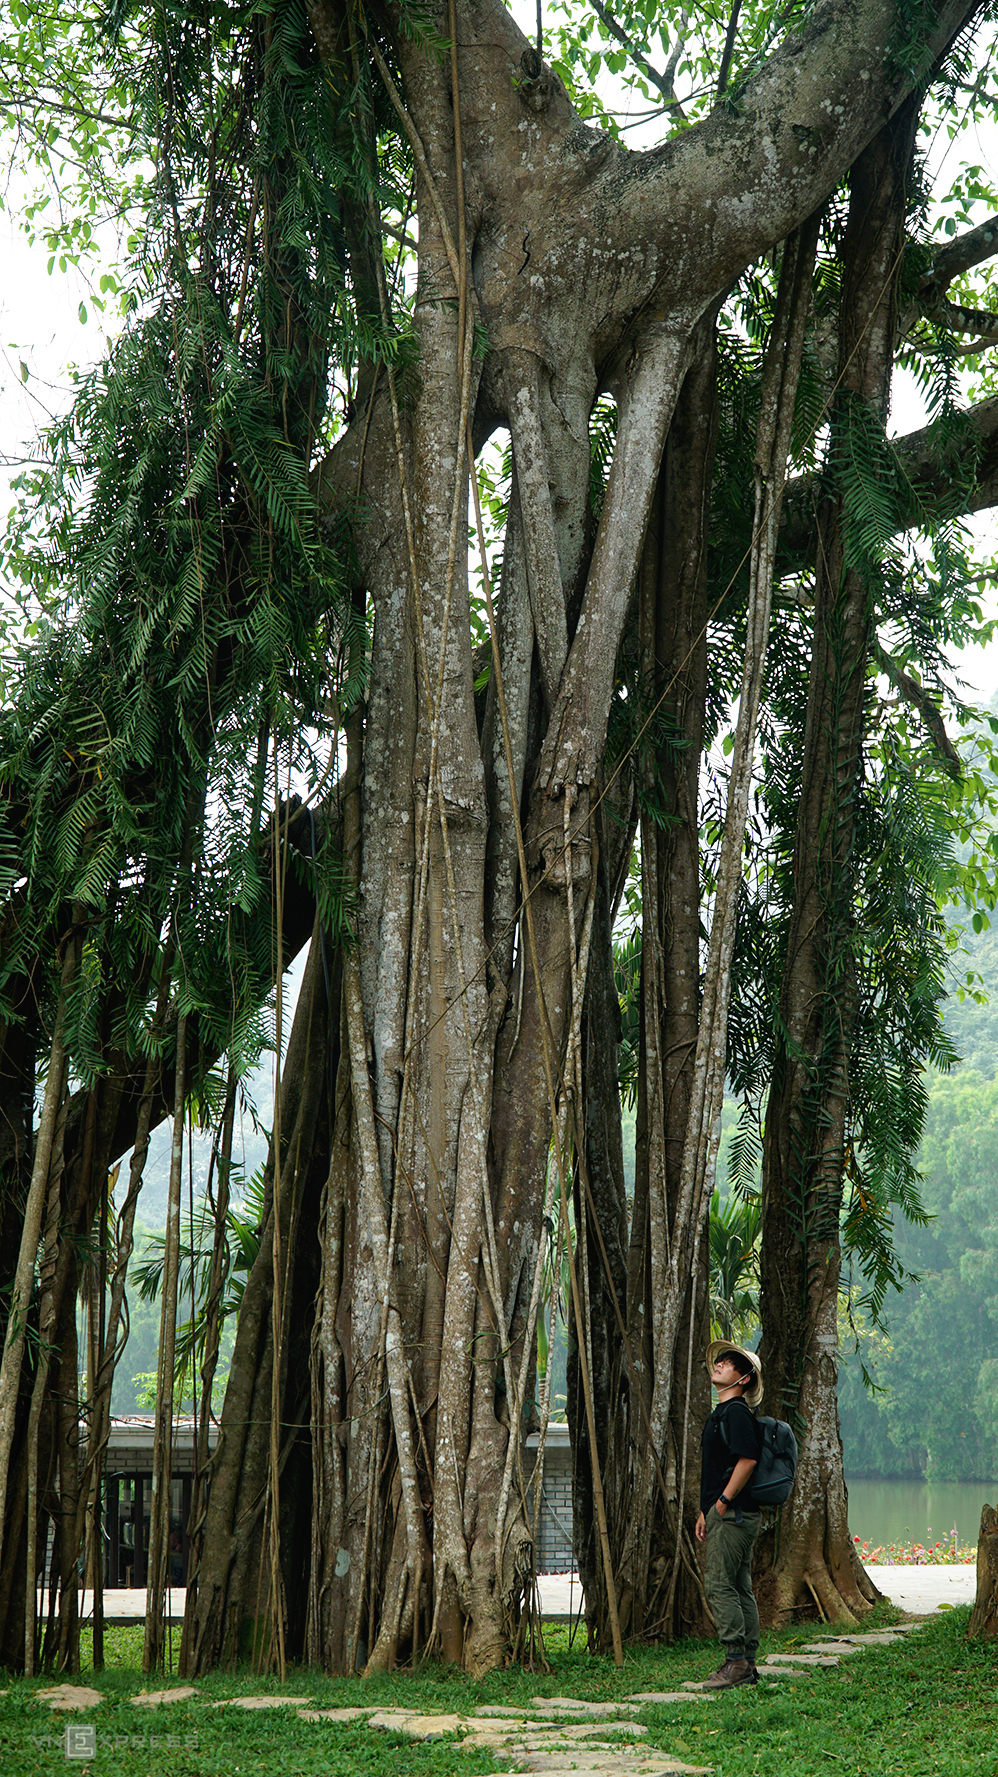 5 giant trees attract tourists across Vietnam